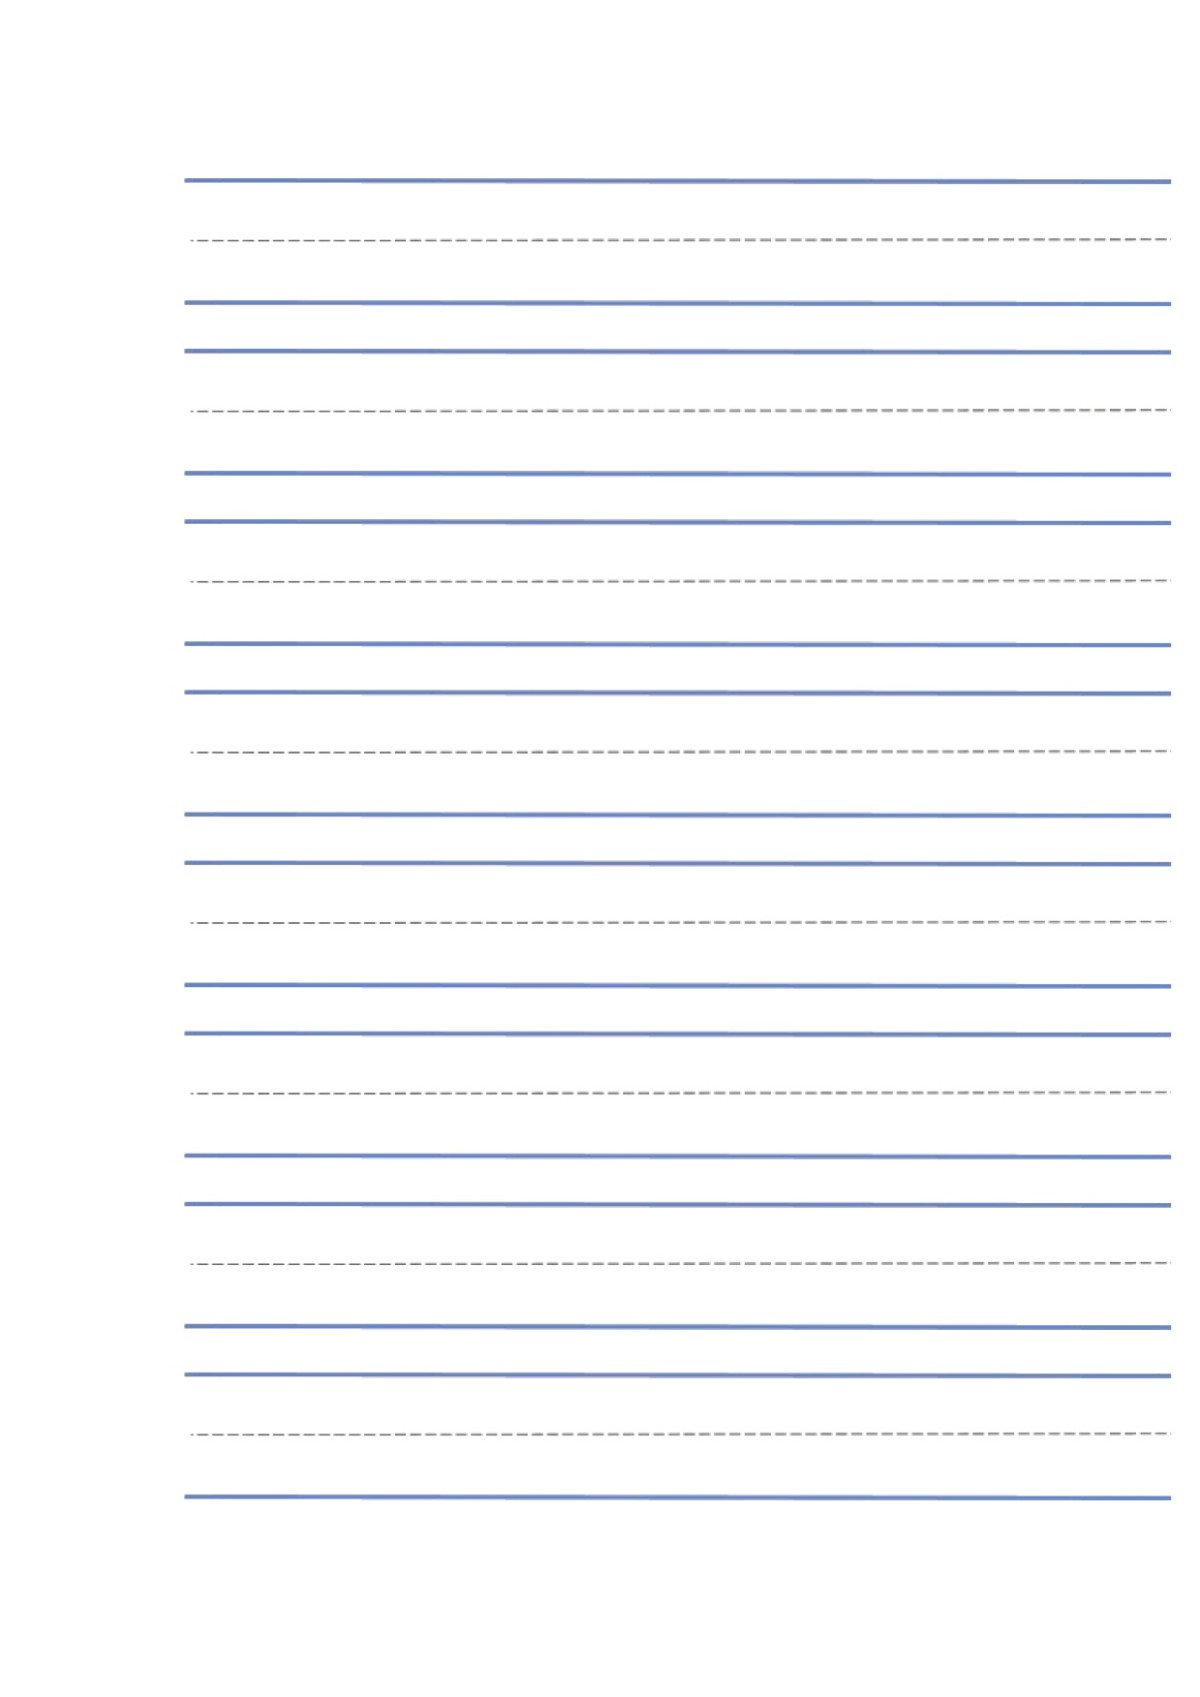 Paper for learning to write